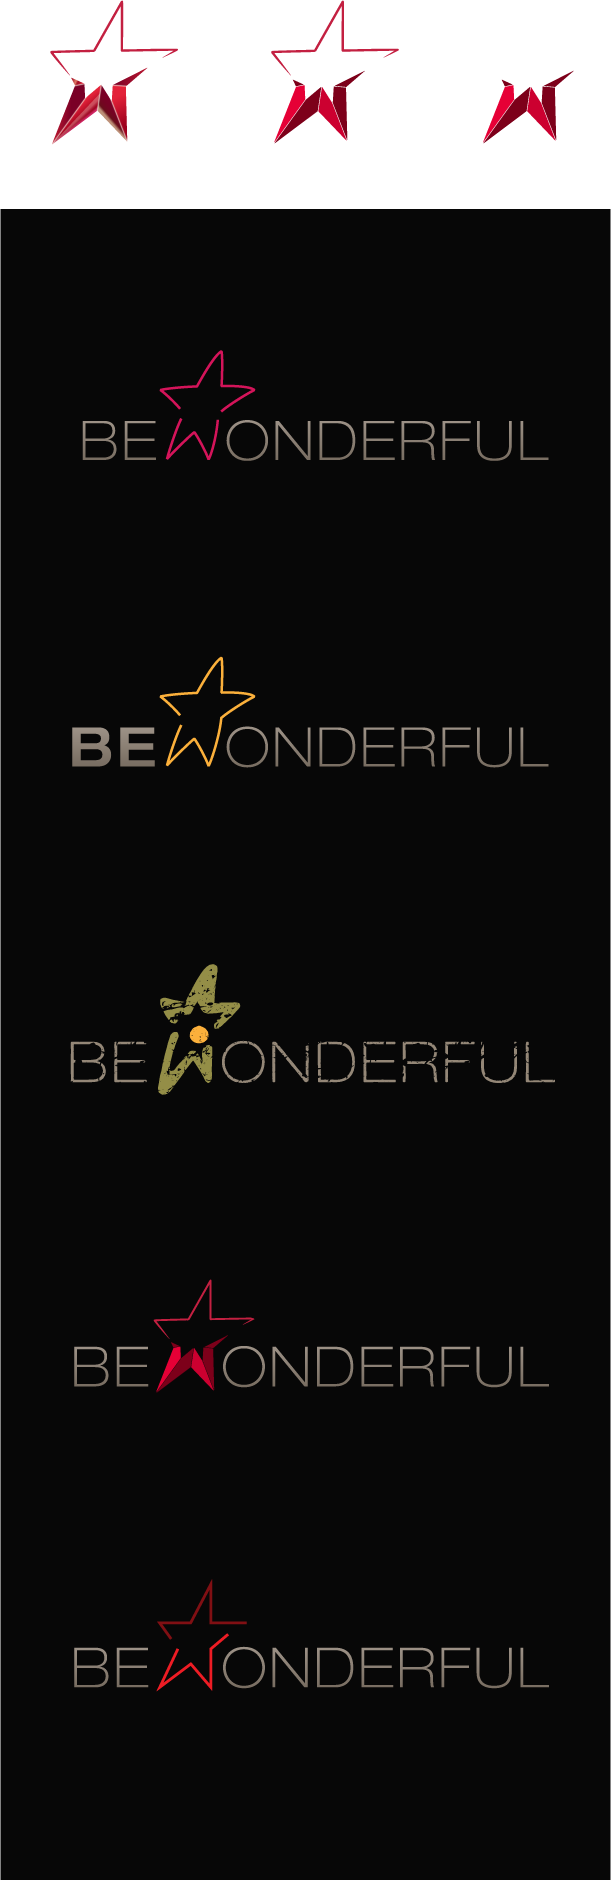 Bewonderful, other logo versions.